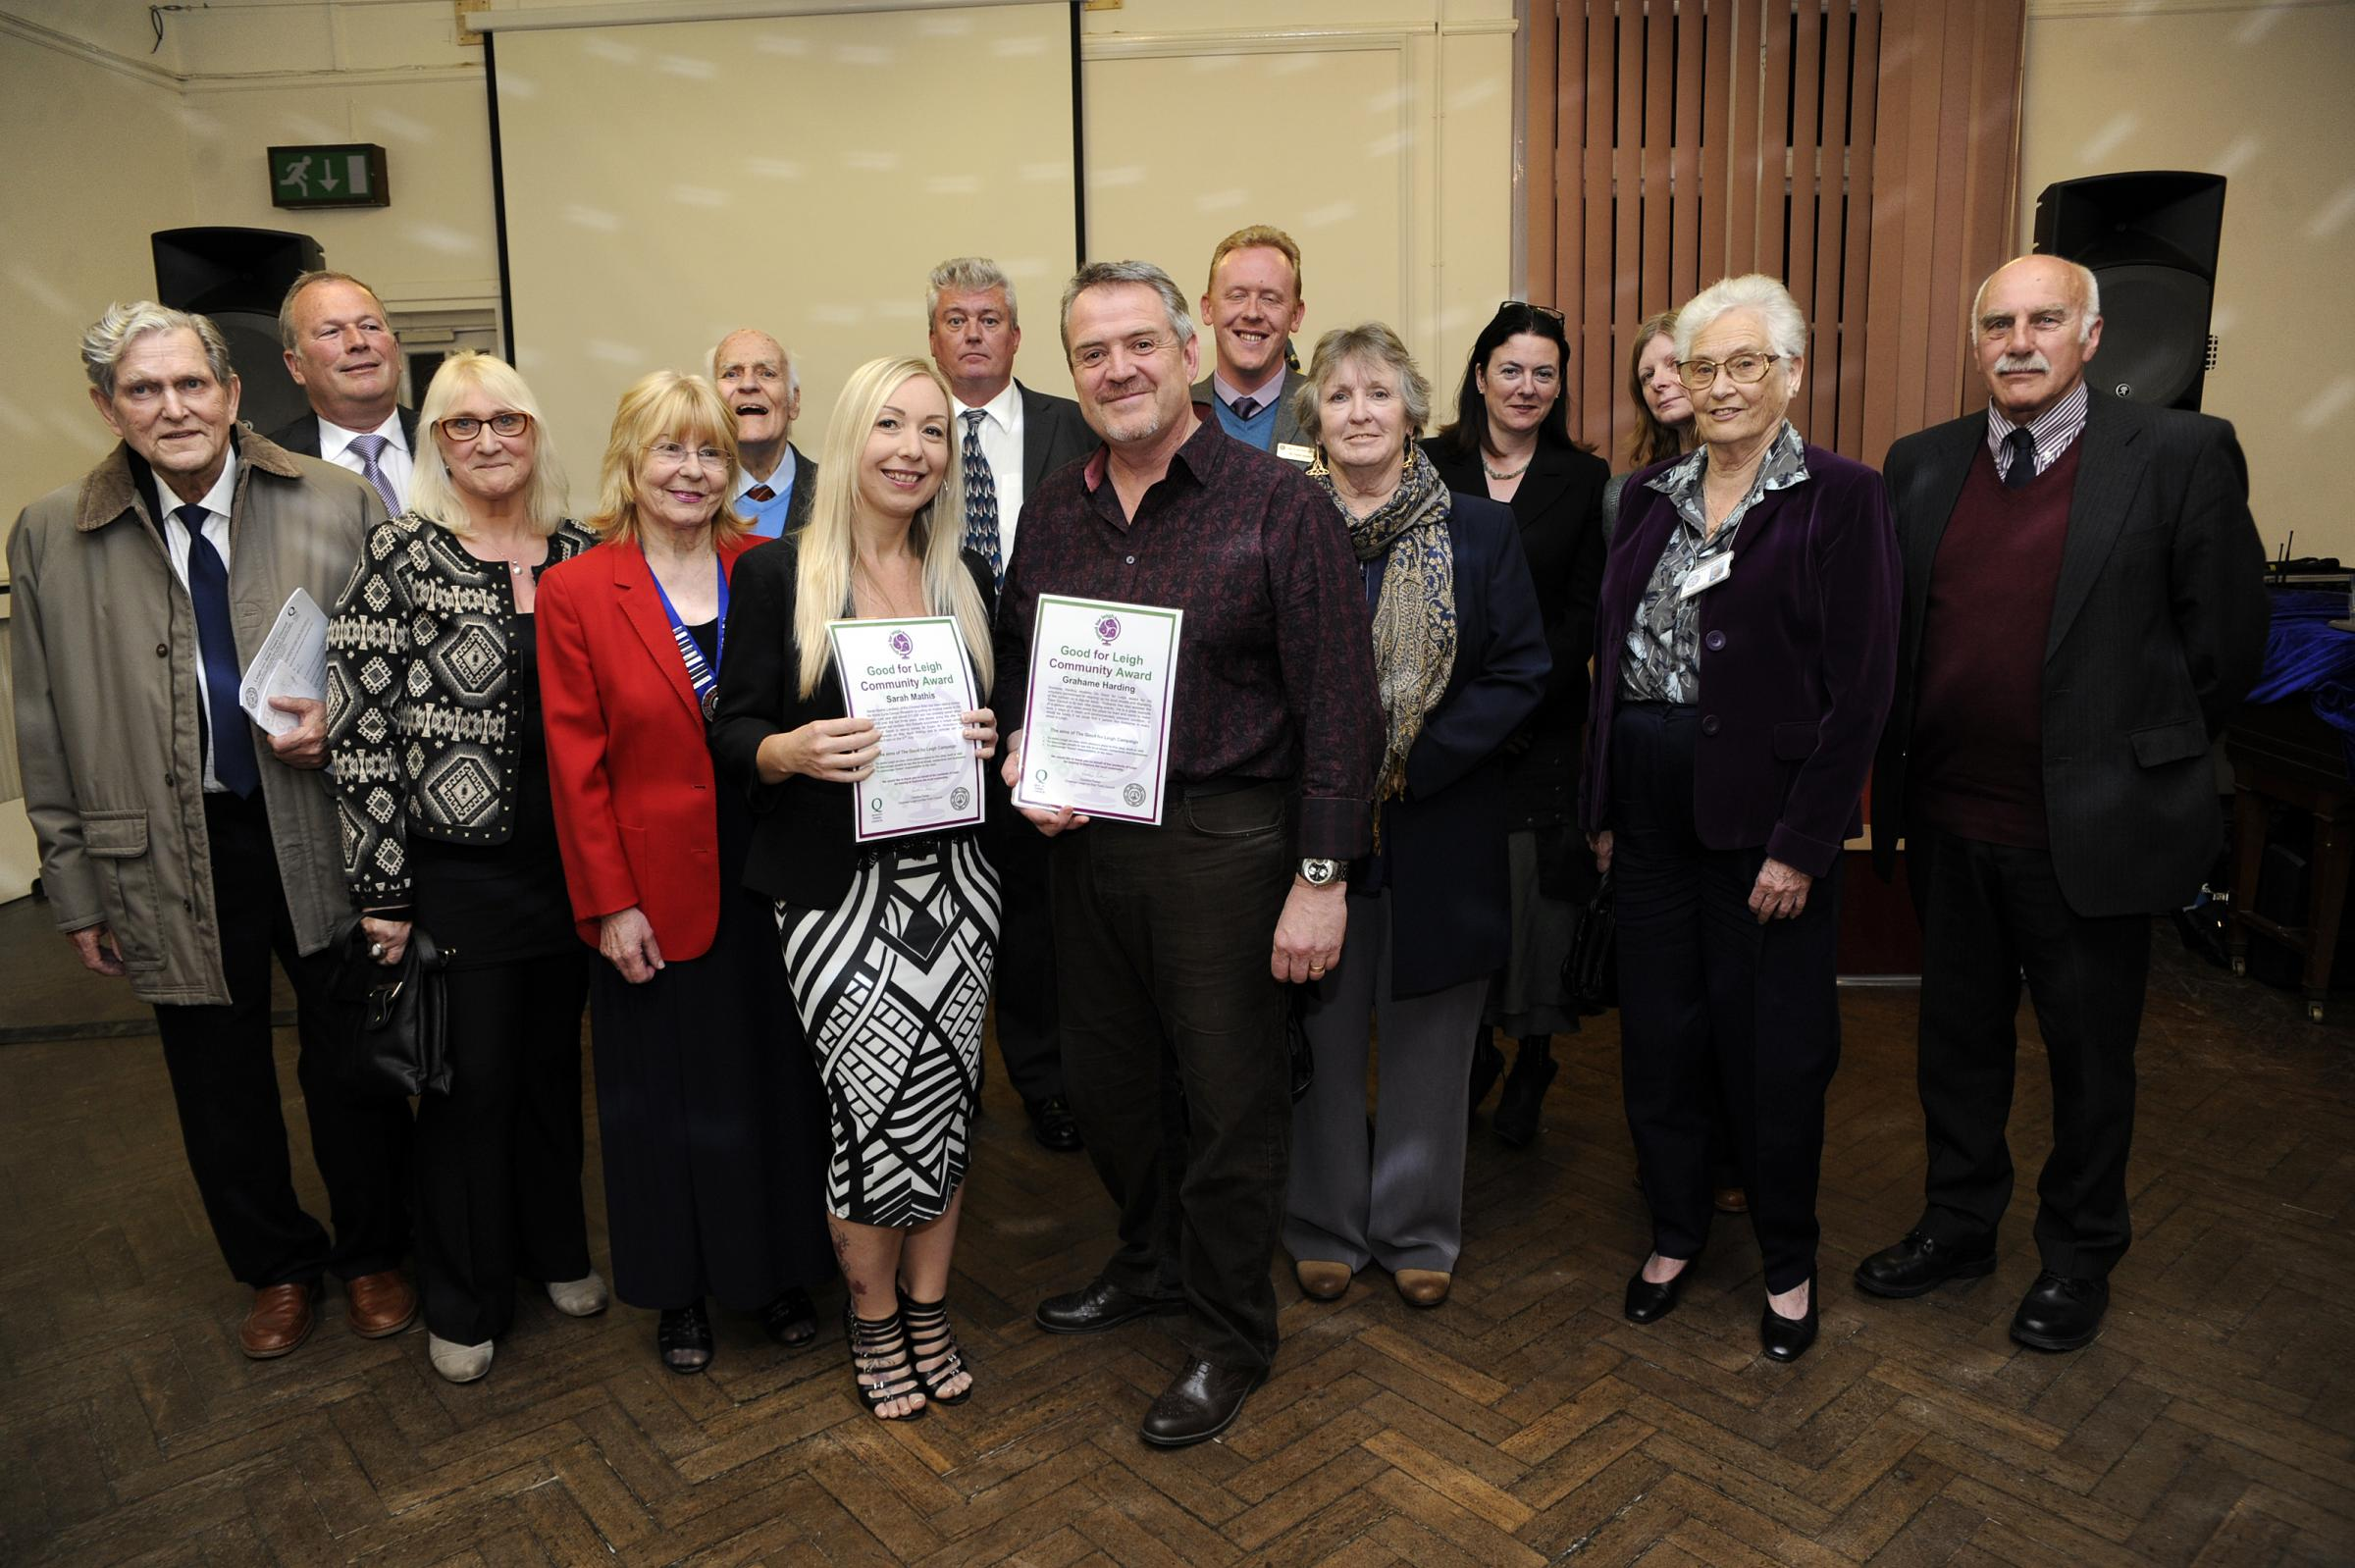 L-R centre is Award winners Sarah Mathis and Grahame Harding with leigh town council. Leigh community centre, Elm Road, Leigh.